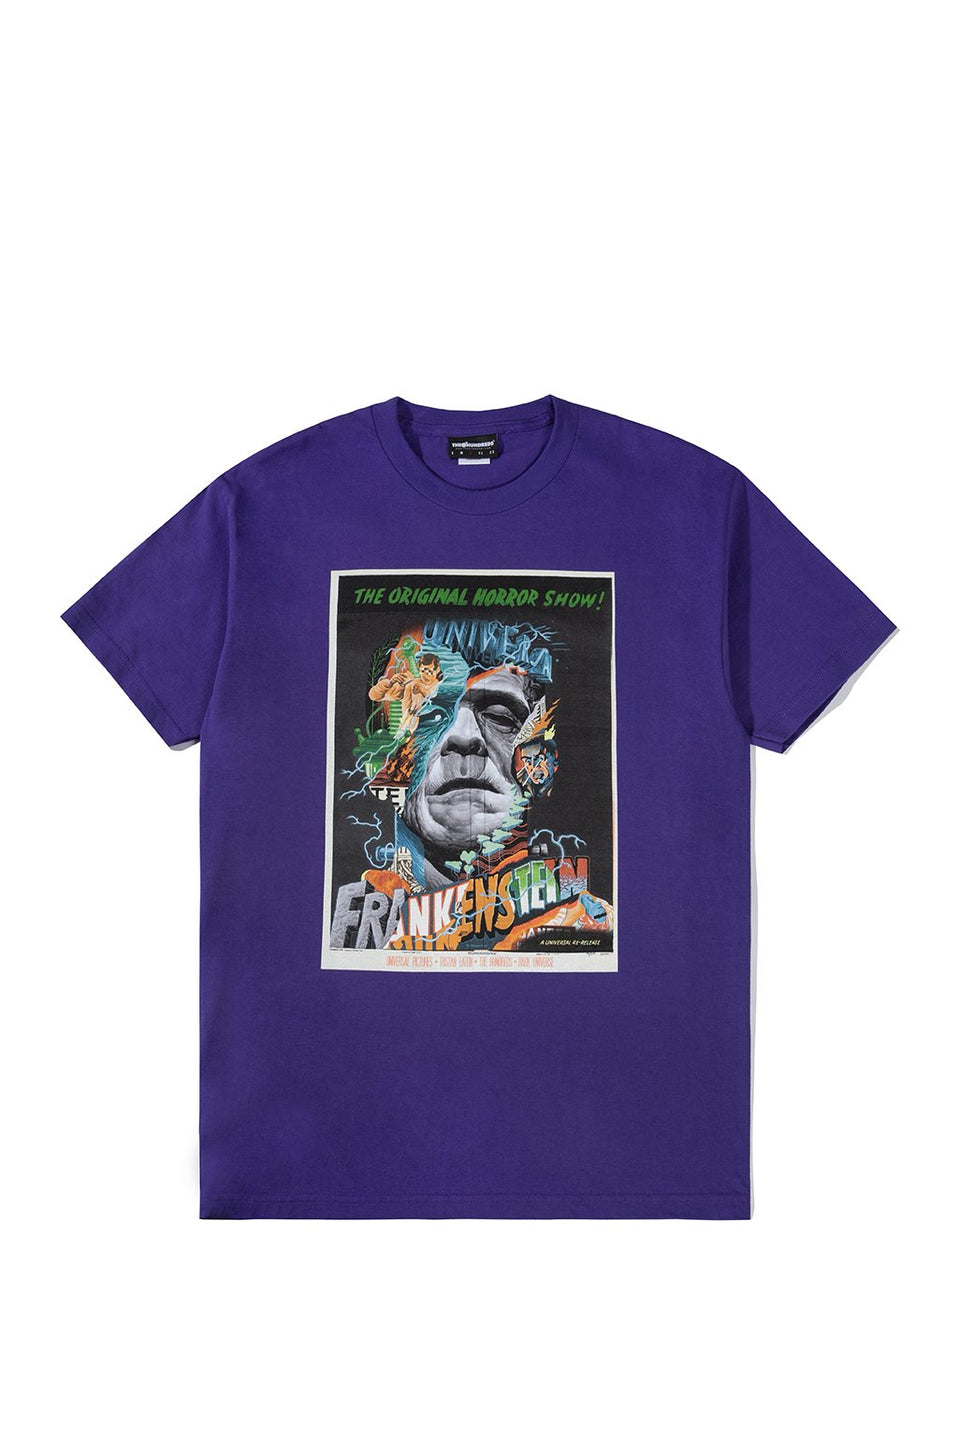 Frankenstein Horror T-Shirt